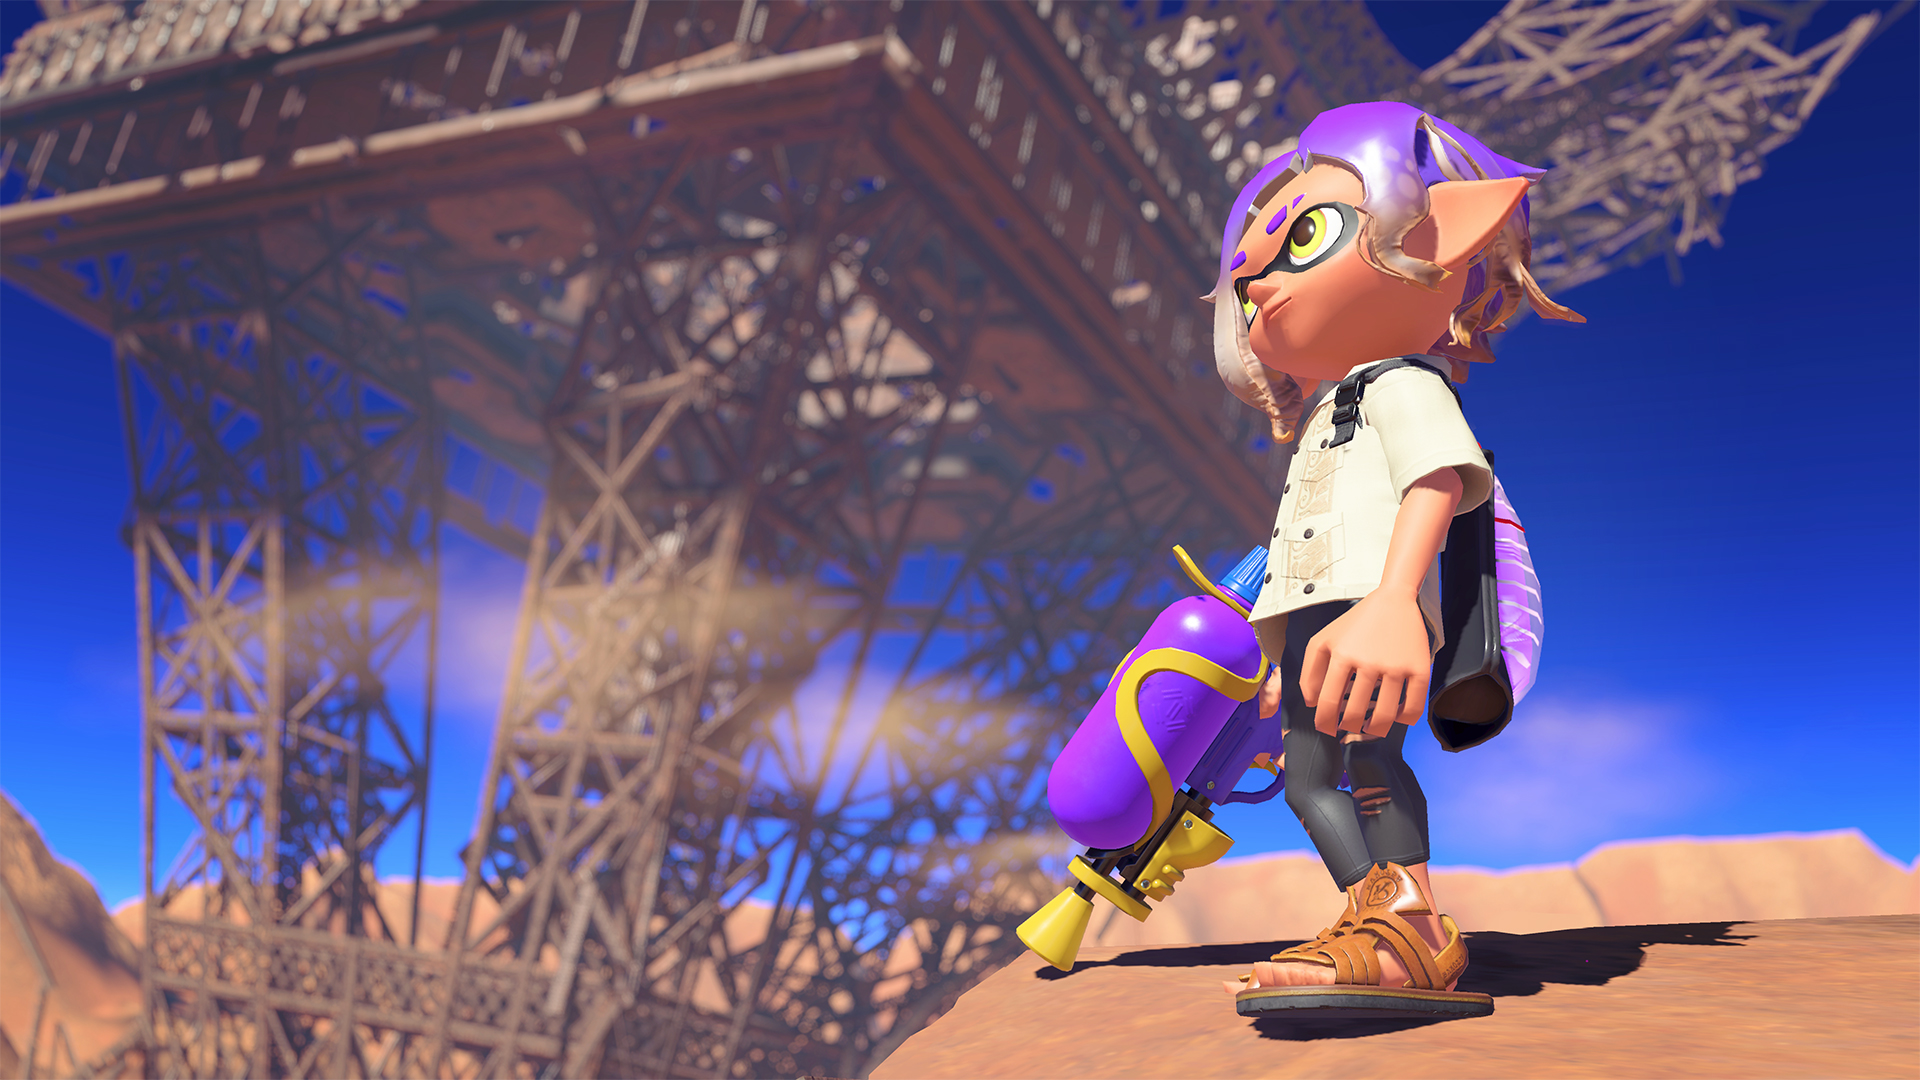 an inkling with purple hair and ink gun surveys a post-apocalyptic wasteland.